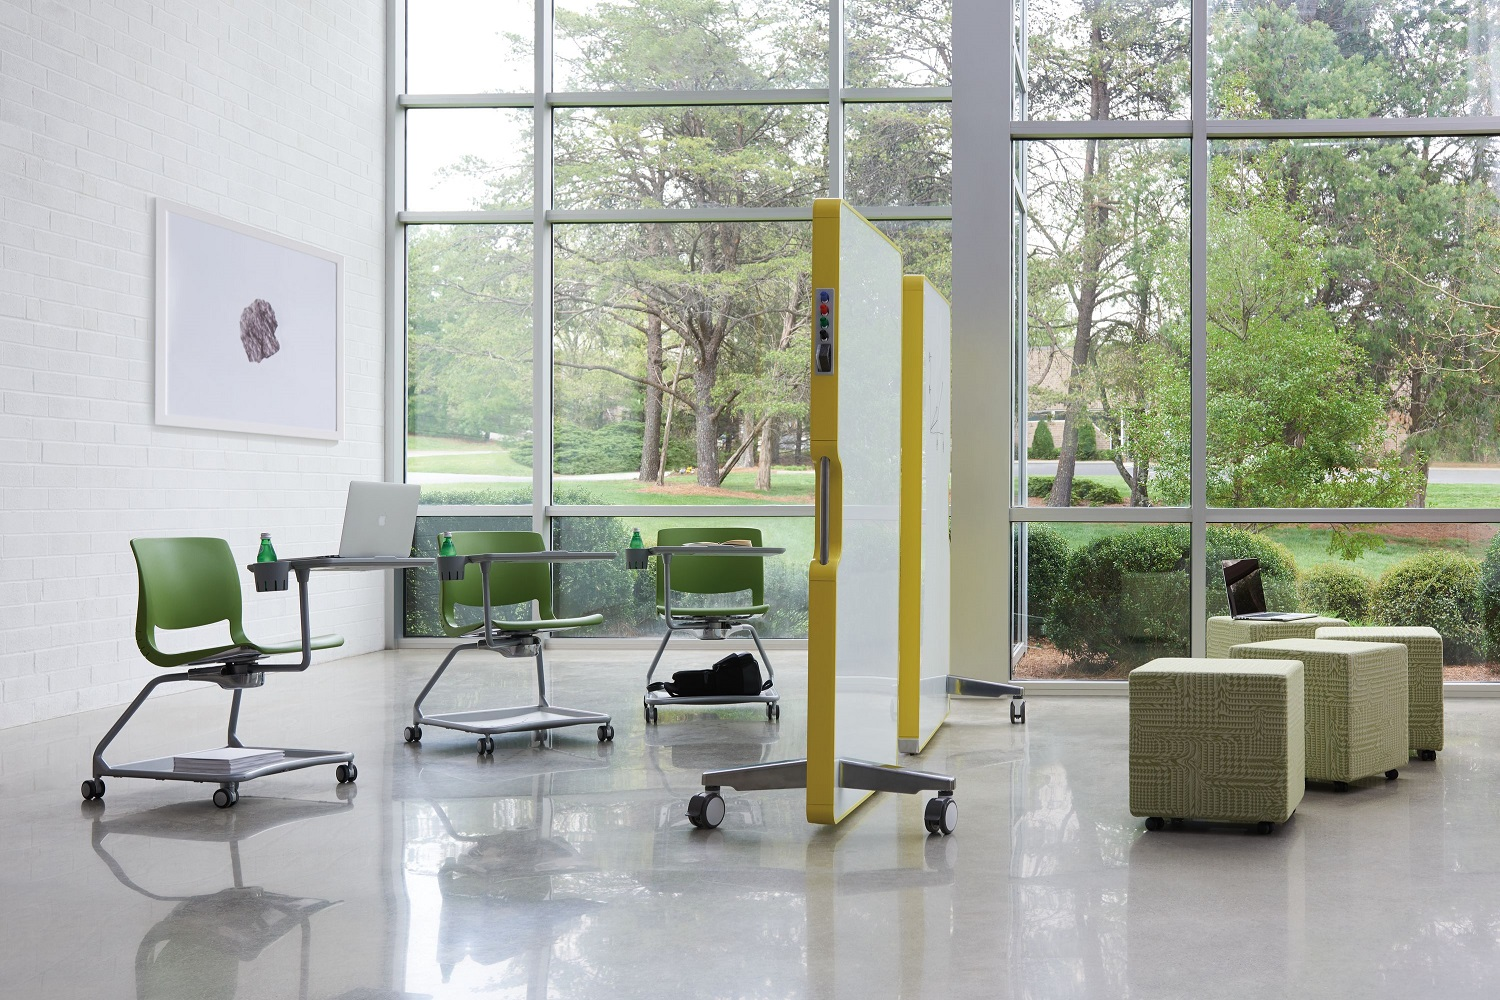 open office floor plan - group collaborative spaces together